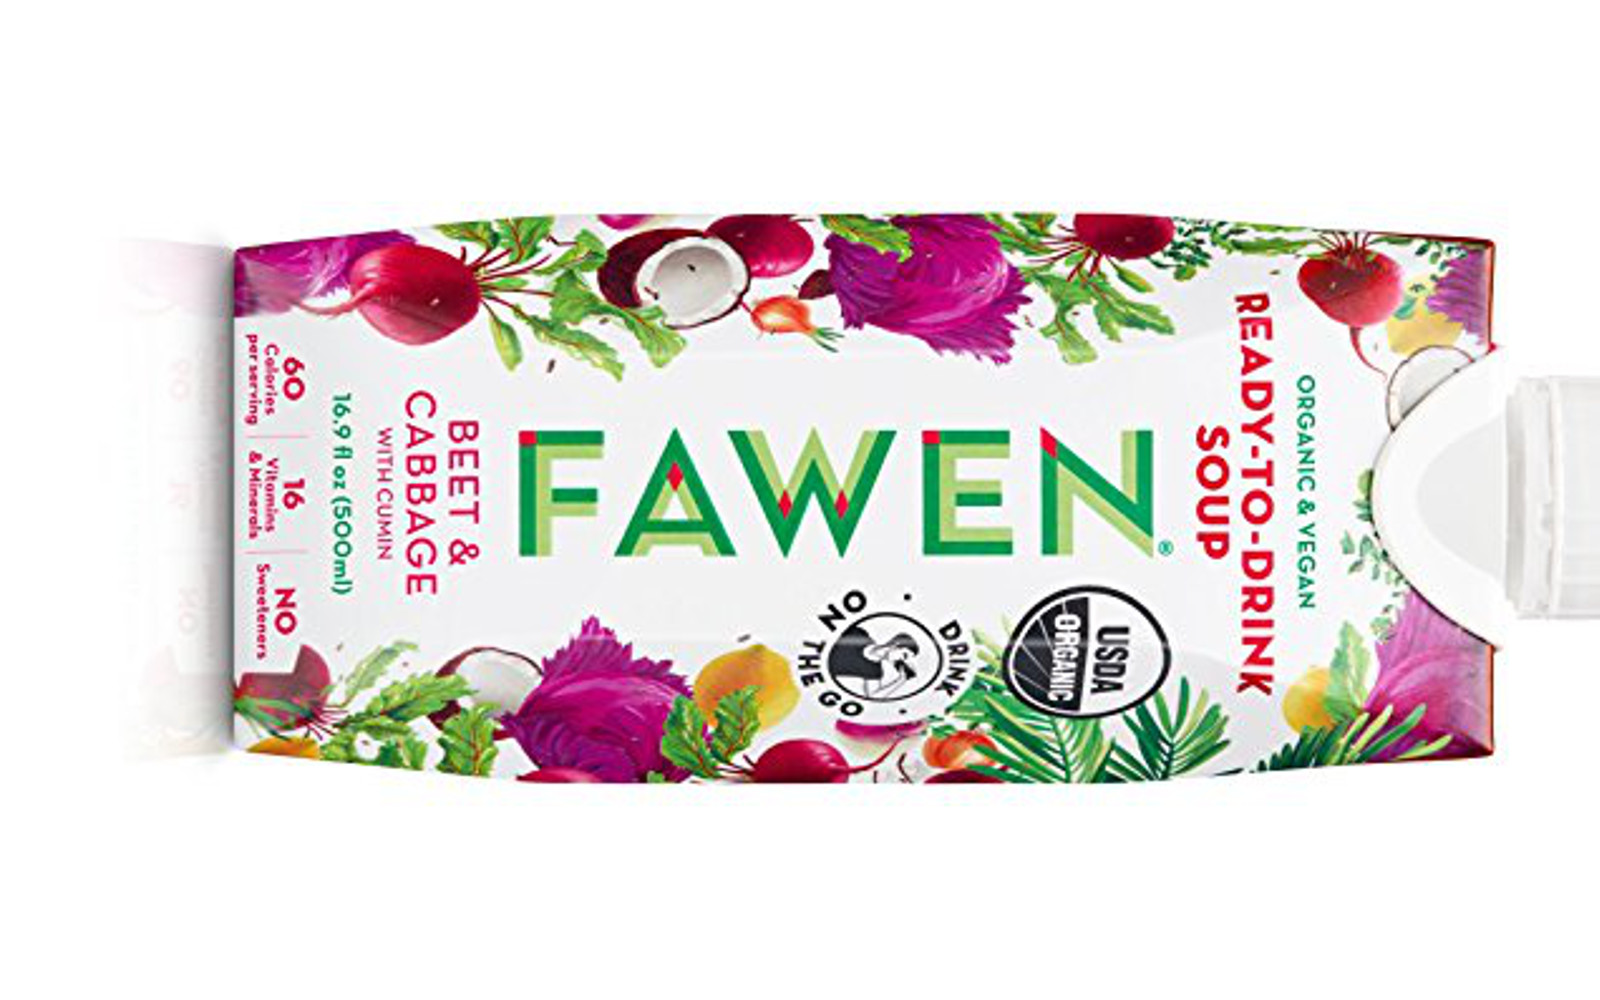 Vegan Amazon Soup Finds for #NationalSoupMonth | Fawen Ready to Drink Chilled Vegetable and Coconut Soup, Organic and Vegan Superfood, Unsweetened, Low Fat, 16 Vitamins and Minerals (Beet & Cabbage with Cumin, Single)